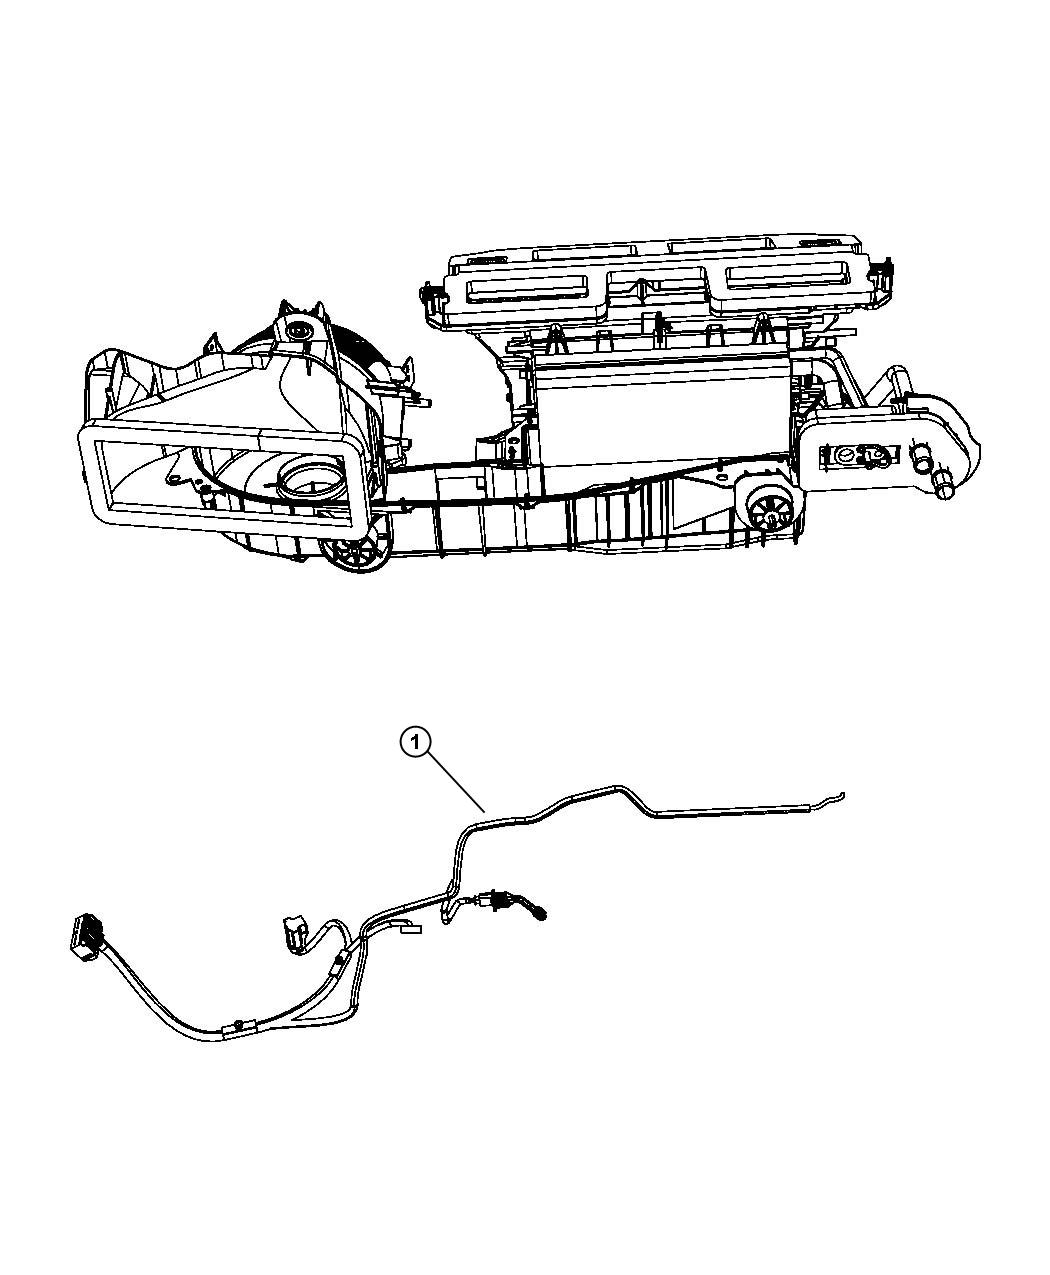 Chrysler 300 Wiring. Used for: a/c and heater. [air cond